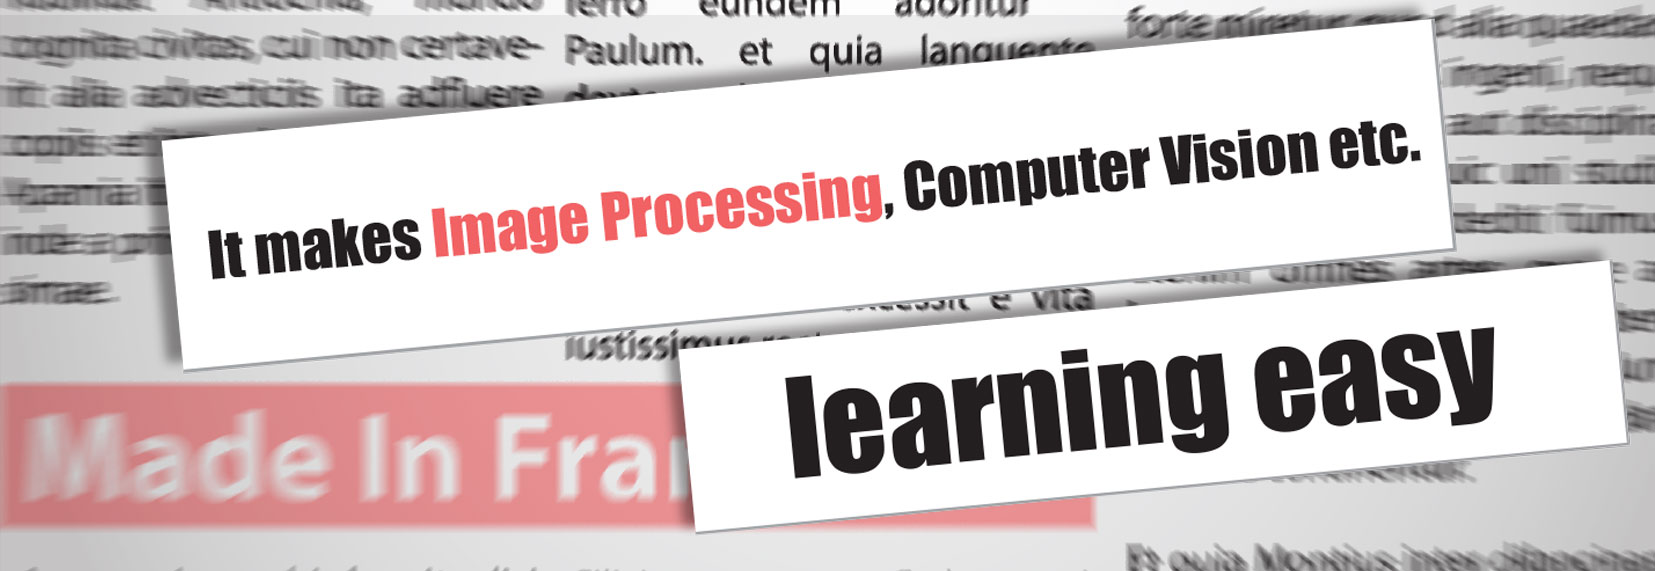 It makes Image Processing, Computer Vision etc. learning easy